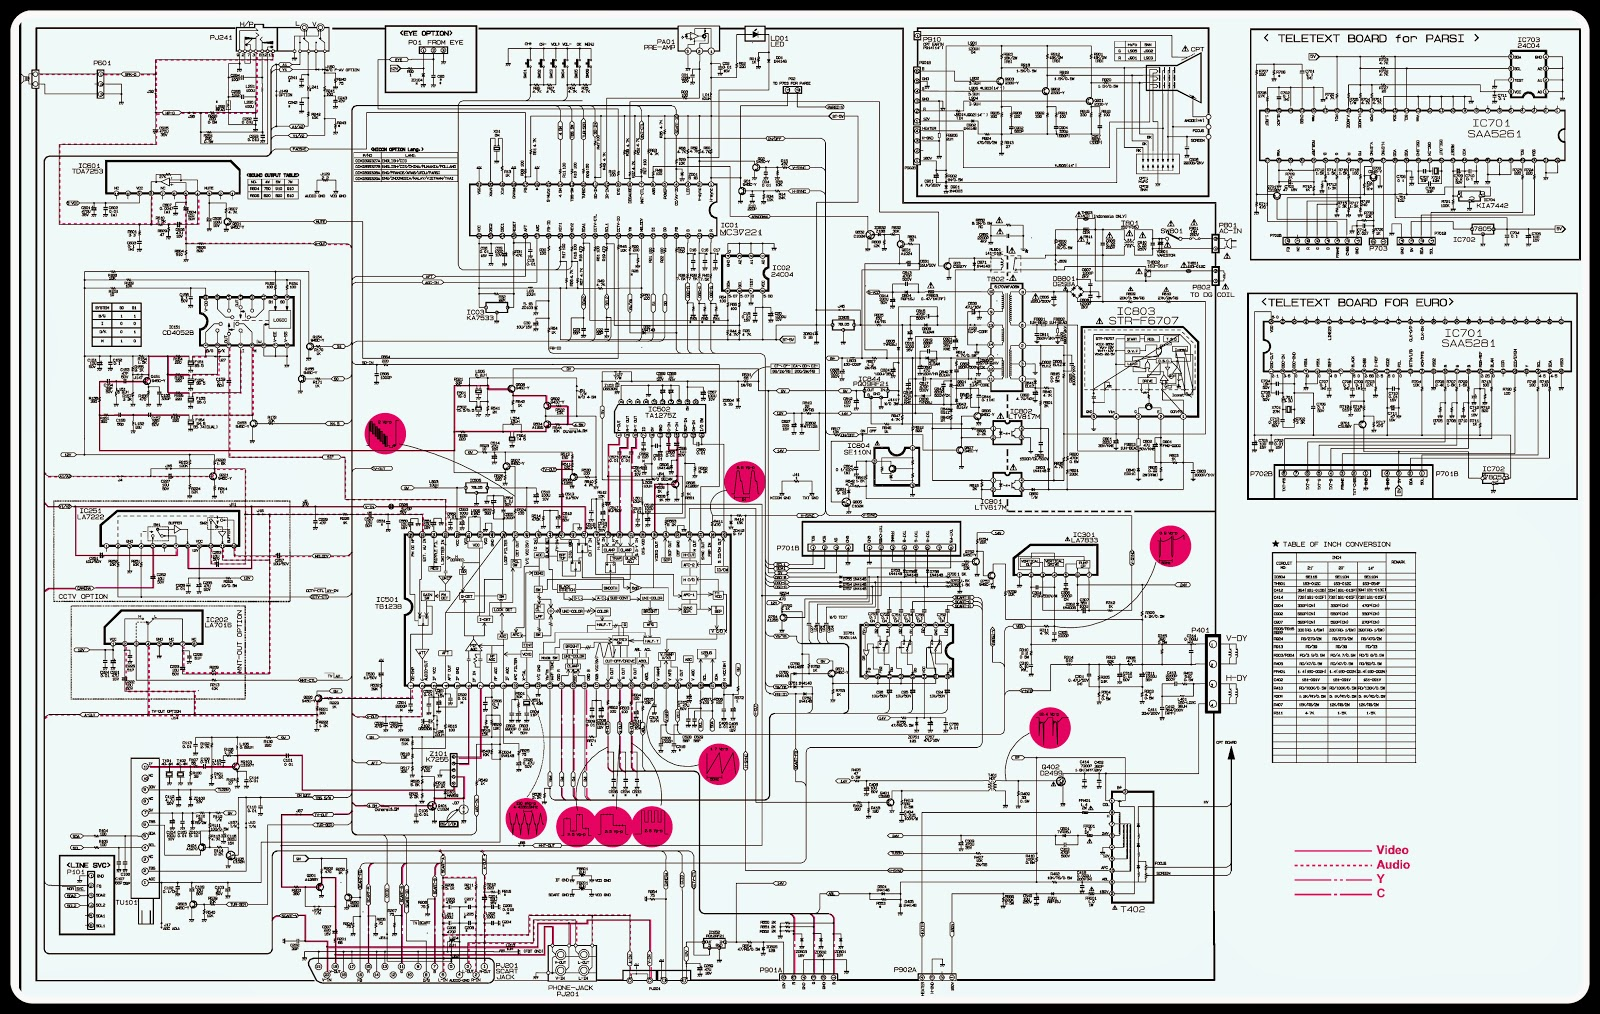 Philips Power Vision Tv Circuit Diagram